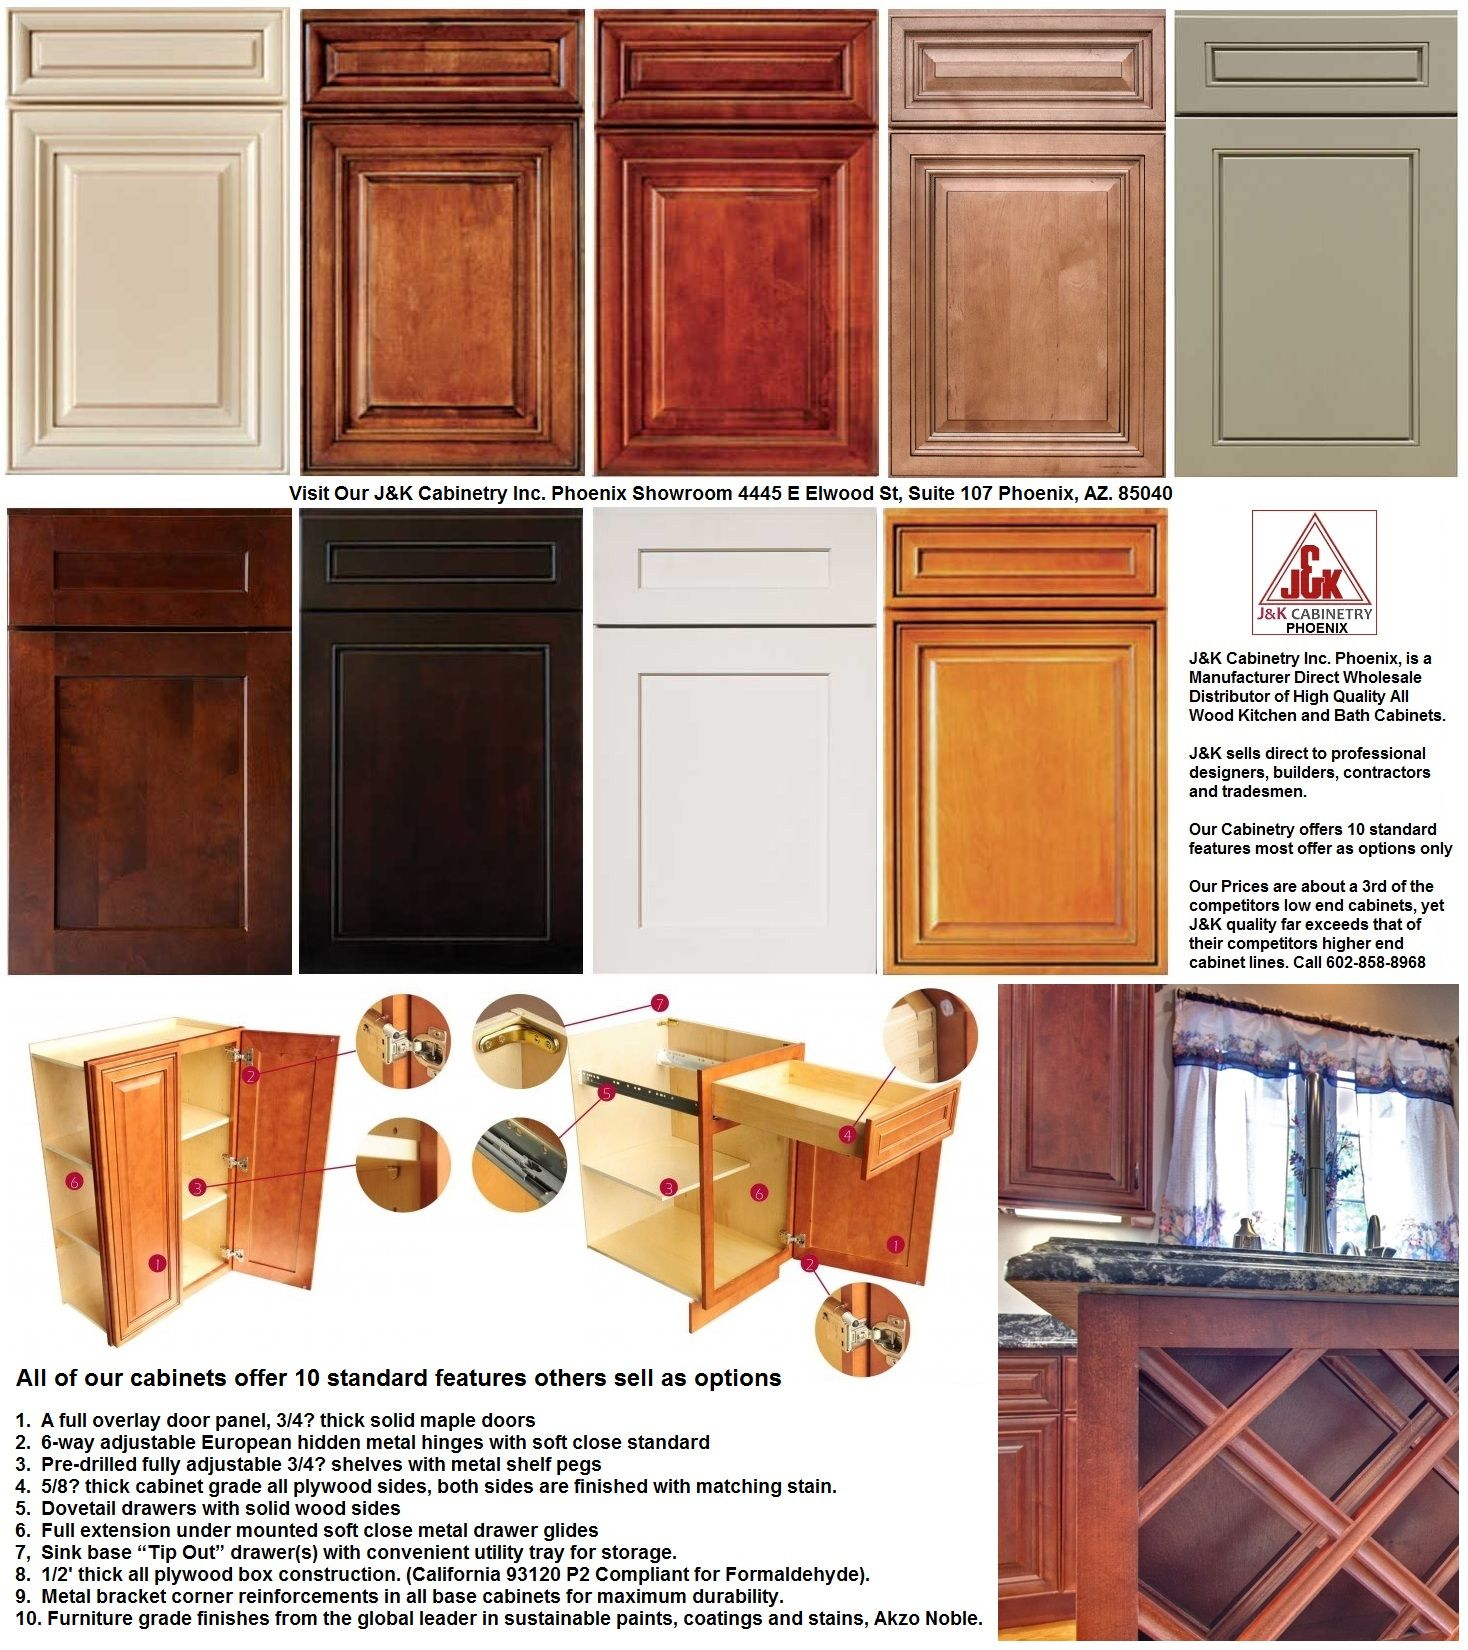 Wholesale Kitchen Cabinets In Phoenix Stocking Manufacturer Direct Distributo Kitchen Cabinets And Countertops Kitchen Remodel Design Kitchen Cabinets For Sale